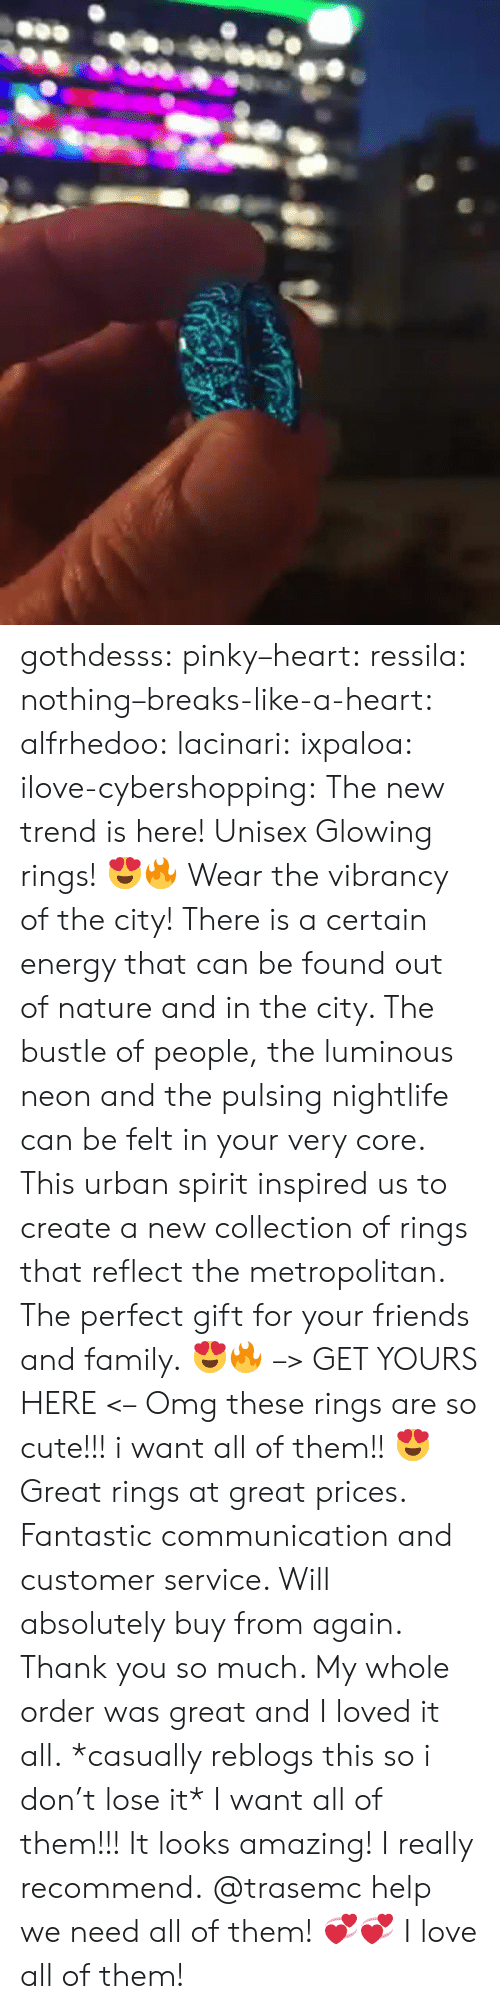 Cute, Energy, and Family: gothdesss:  pinky–heart: ressila:  nothing–breaks-like-a-heart:  alfrhedoo:  lacinari:  ixpaloa:  ilove-cybershopping:  The new trend is here! Unisex Glowing rings! 😍🔥 Wear the vibrancy of the city! There is a certain energy that can be found out of nature and in the city. The bustle of people, the luminous neon and the pulsing nightlife can be felt in your very core. This urban spirit inspired us to create a new collection of rings that reflect the metropolitan. The perfect gift for your friends and family. 😍🔥 –> GET YOURS HERE <–  Omg these rings are so cute!!! i want all of them!! 😍  Great rings at great prices. Fantastic communication and customer service. Will absolutely buy from again. Thank you so much. My whole order was great and I loved it all.  *casually reblogs this so i don't lose it*  I want all of them!!!  It looks amazing! I really recommend.  @trasemc help we need all of them! 💞💞  I love all of them!